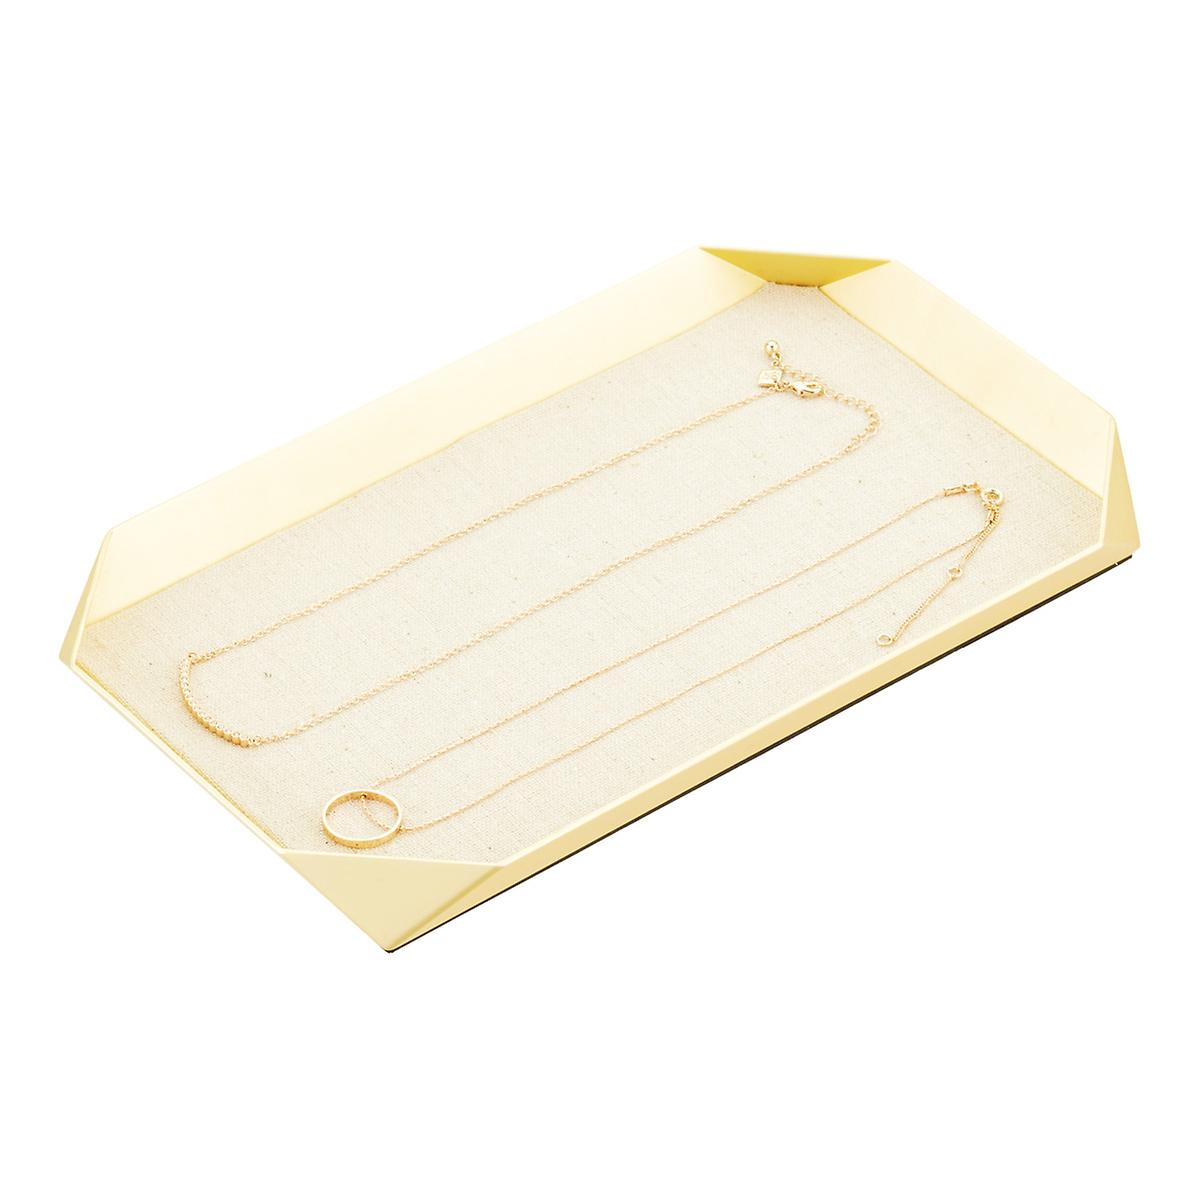 Umbra Gold Glamour Jewelry Tray with Linen Base